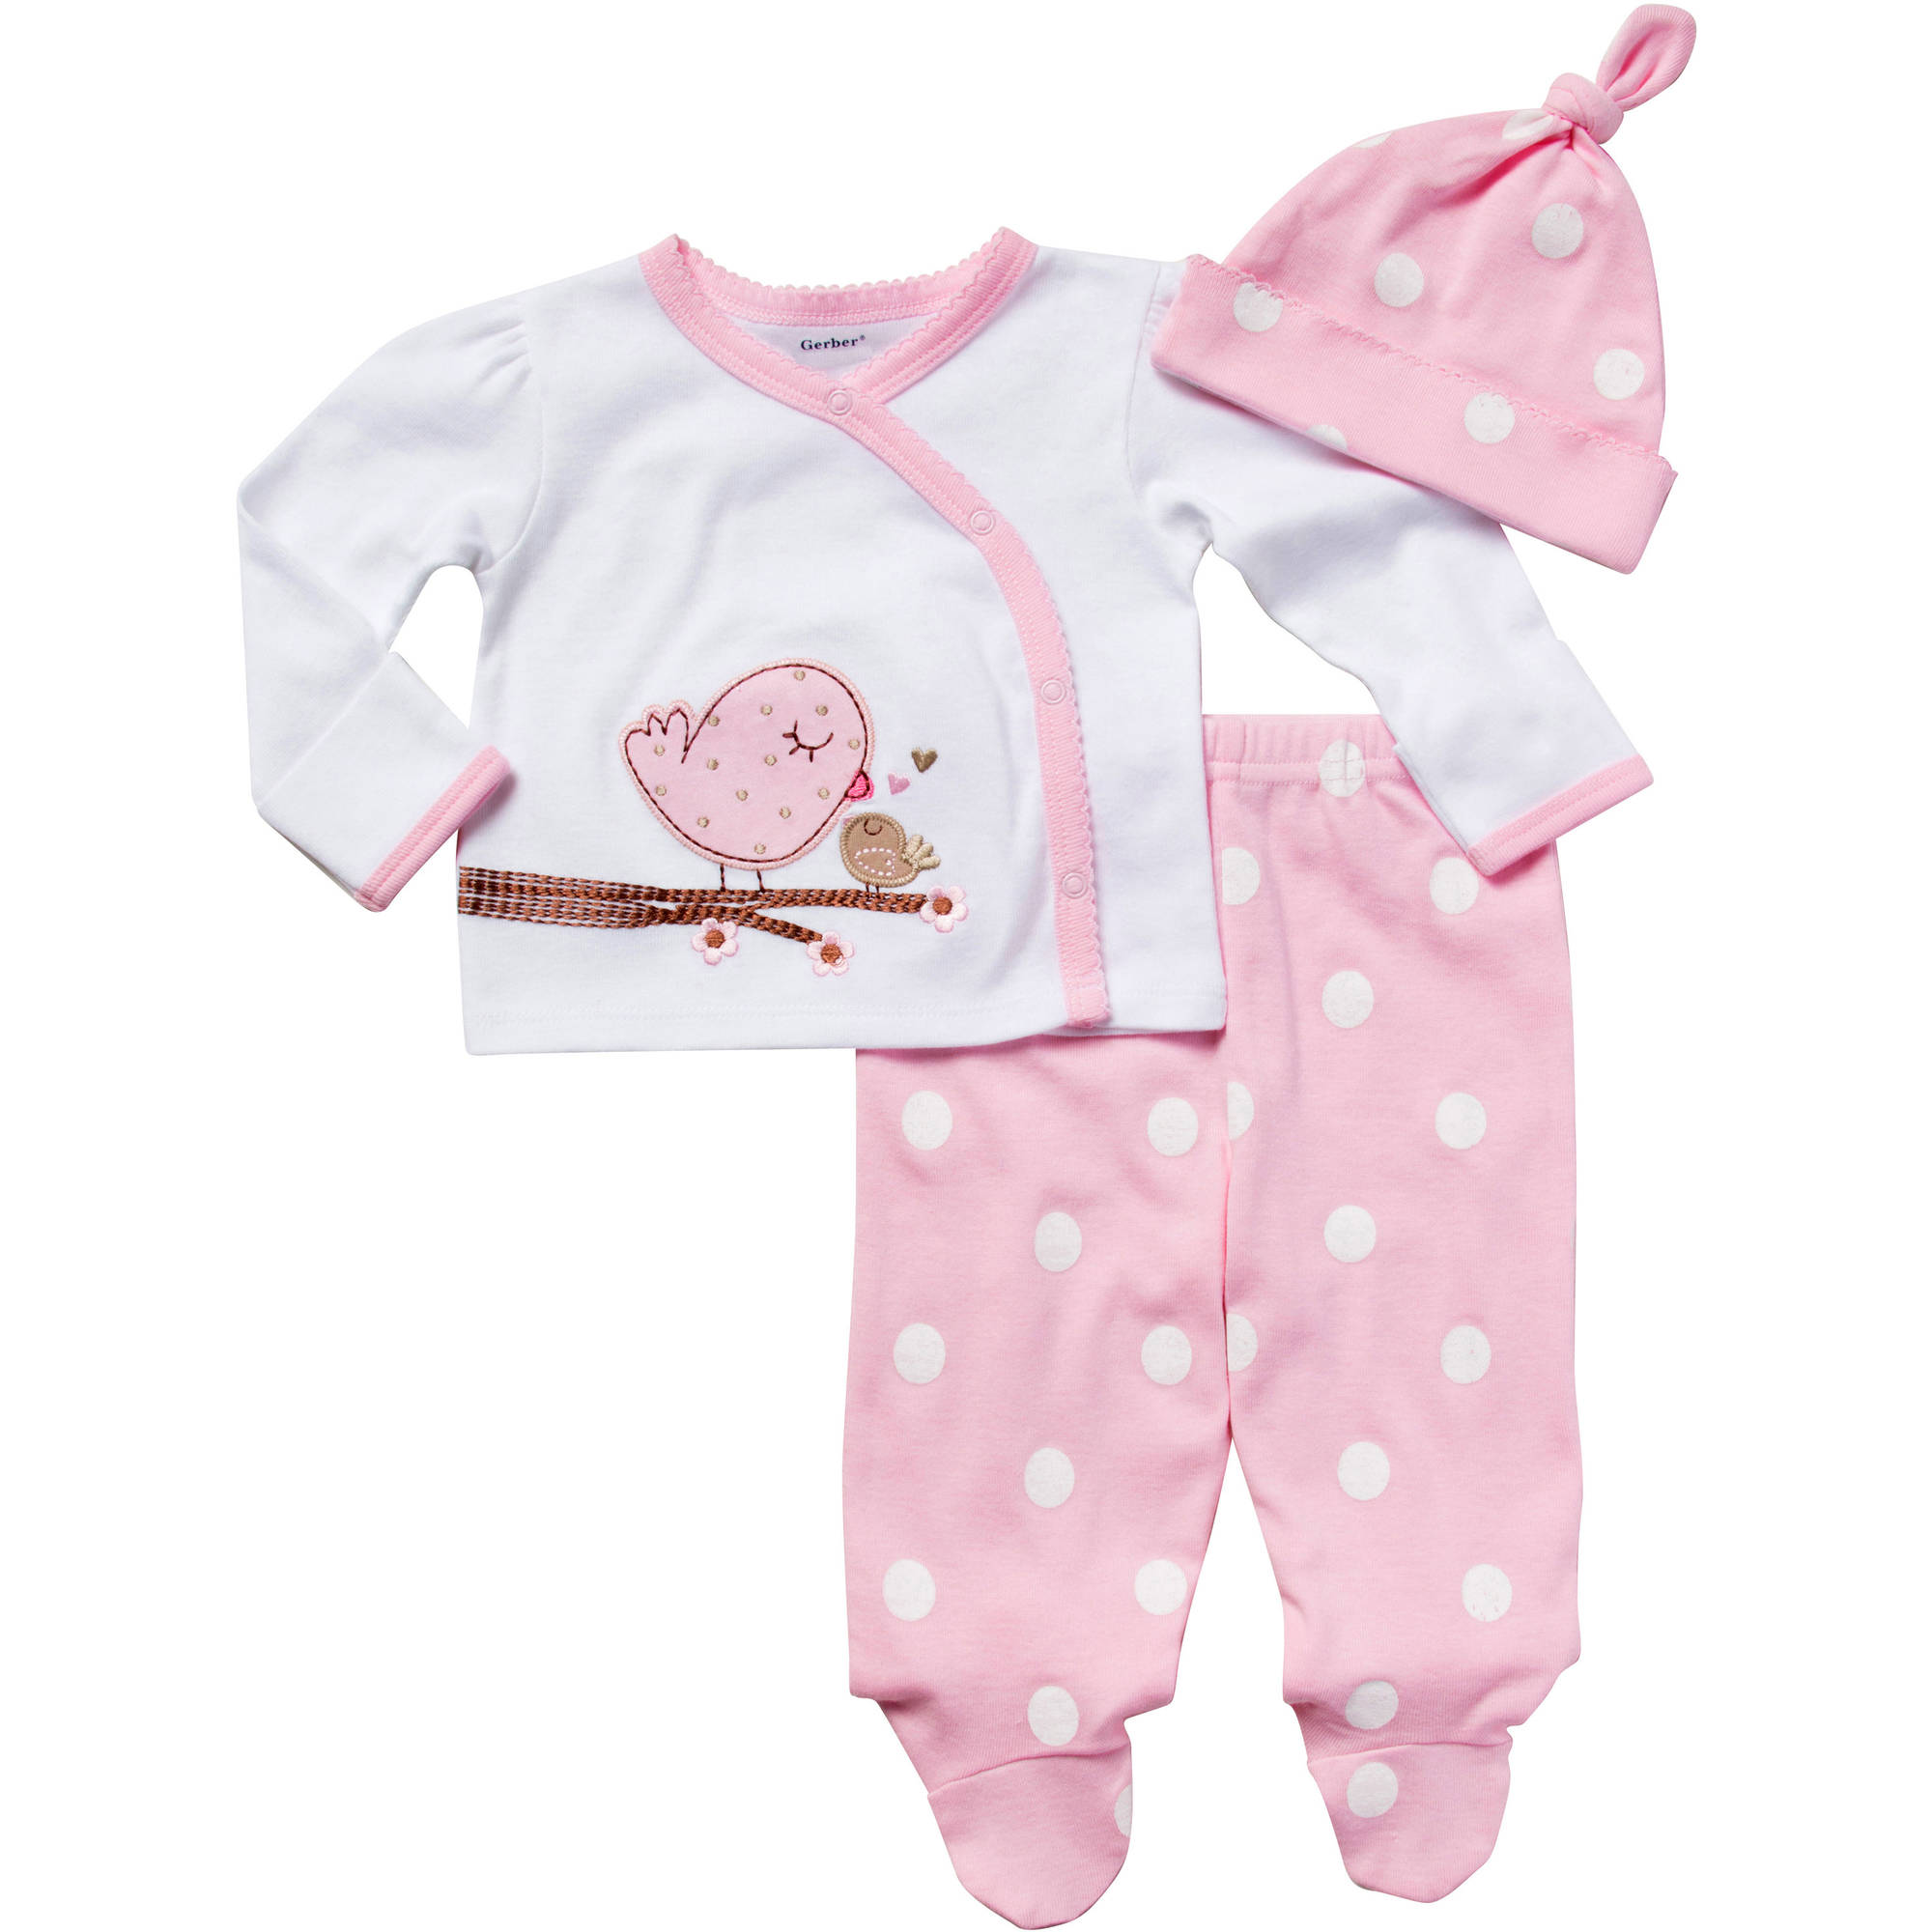 Gerber Newborn Baby Girl Bird Take Me Home Set